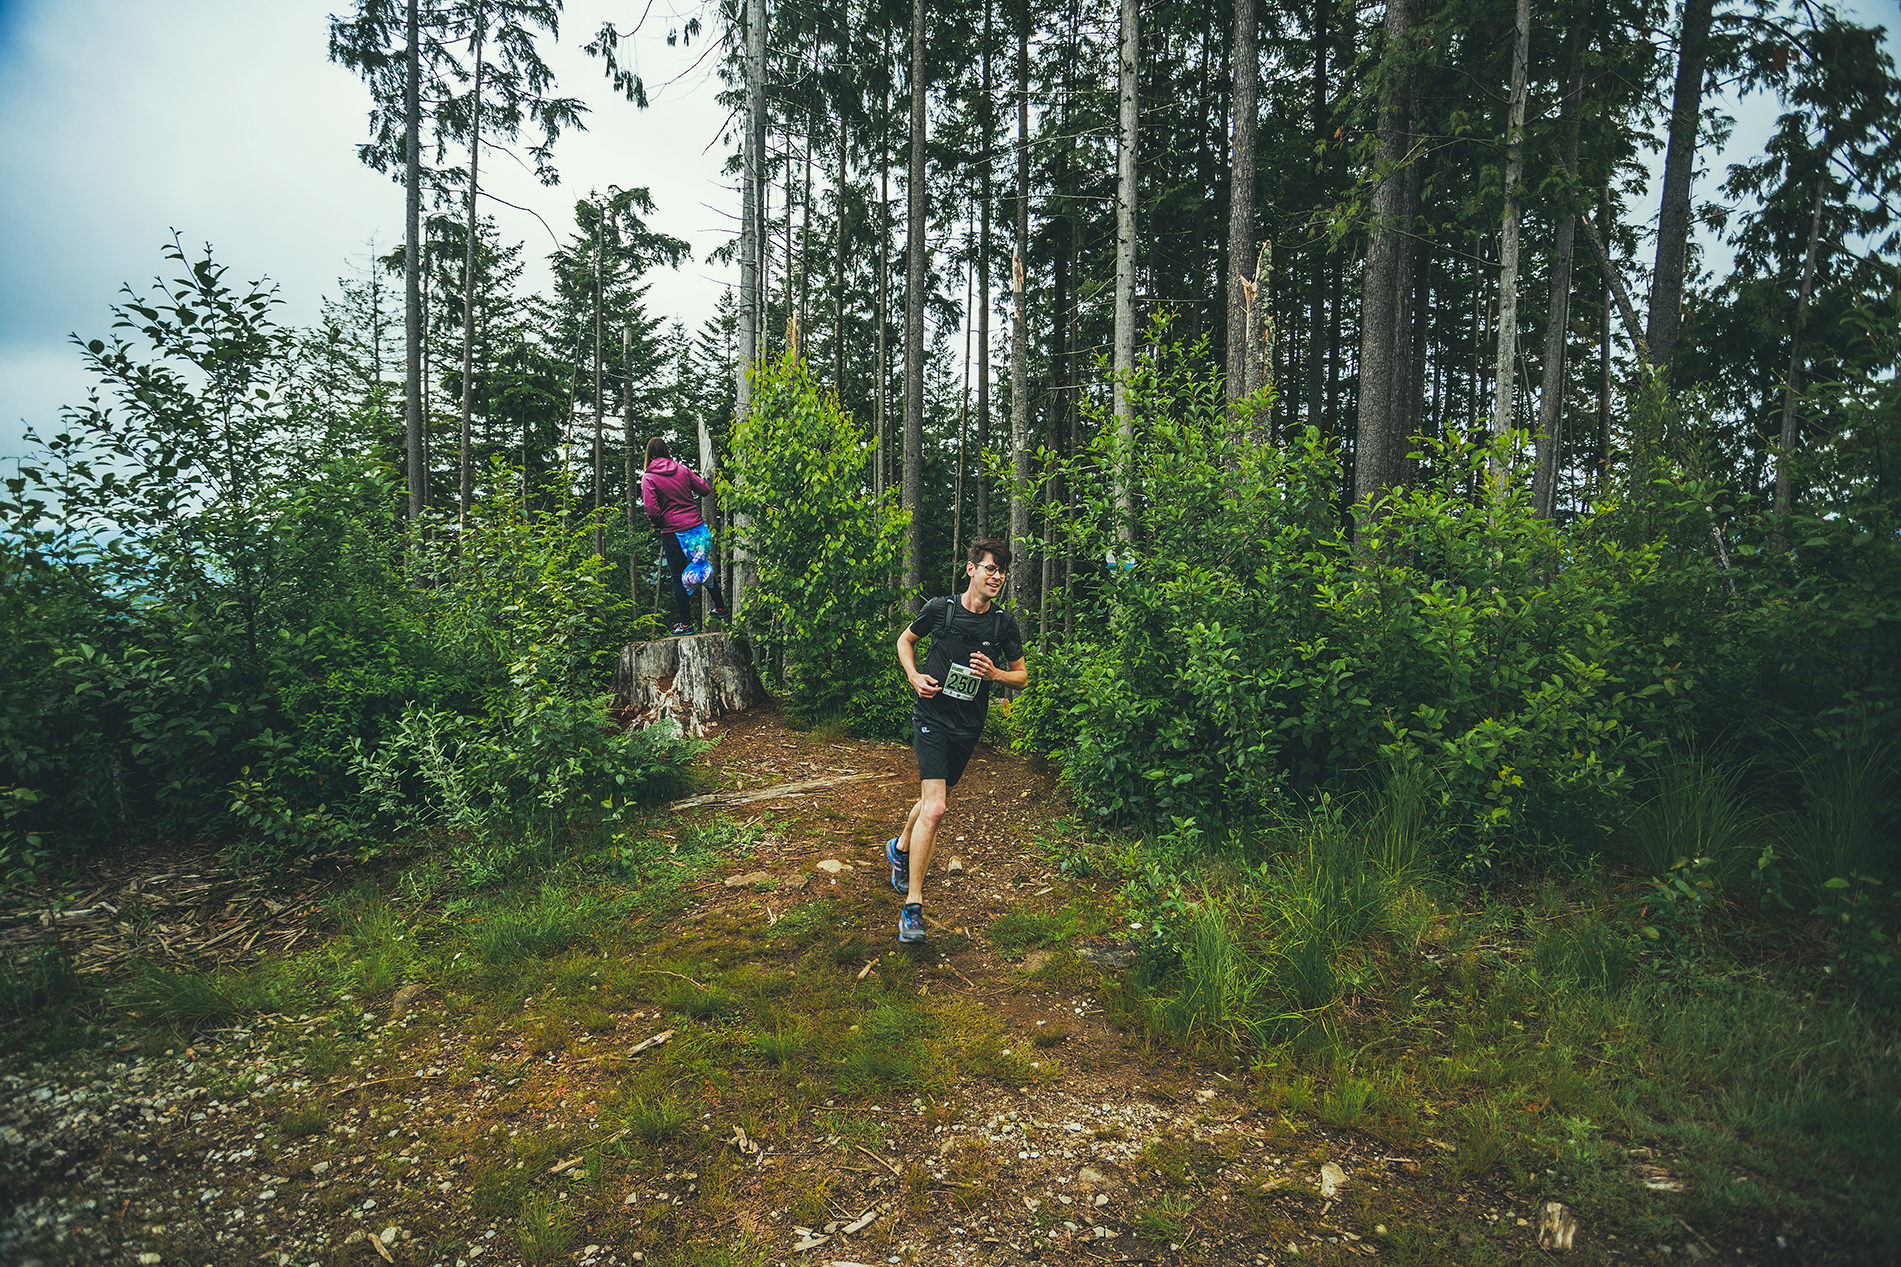 Fraser Valley Trail Races - Bear Mountain - IMG_2678 by Brice Ferre Studio - Vancouver Portrait Adventure and Athlete Photographer.jpg